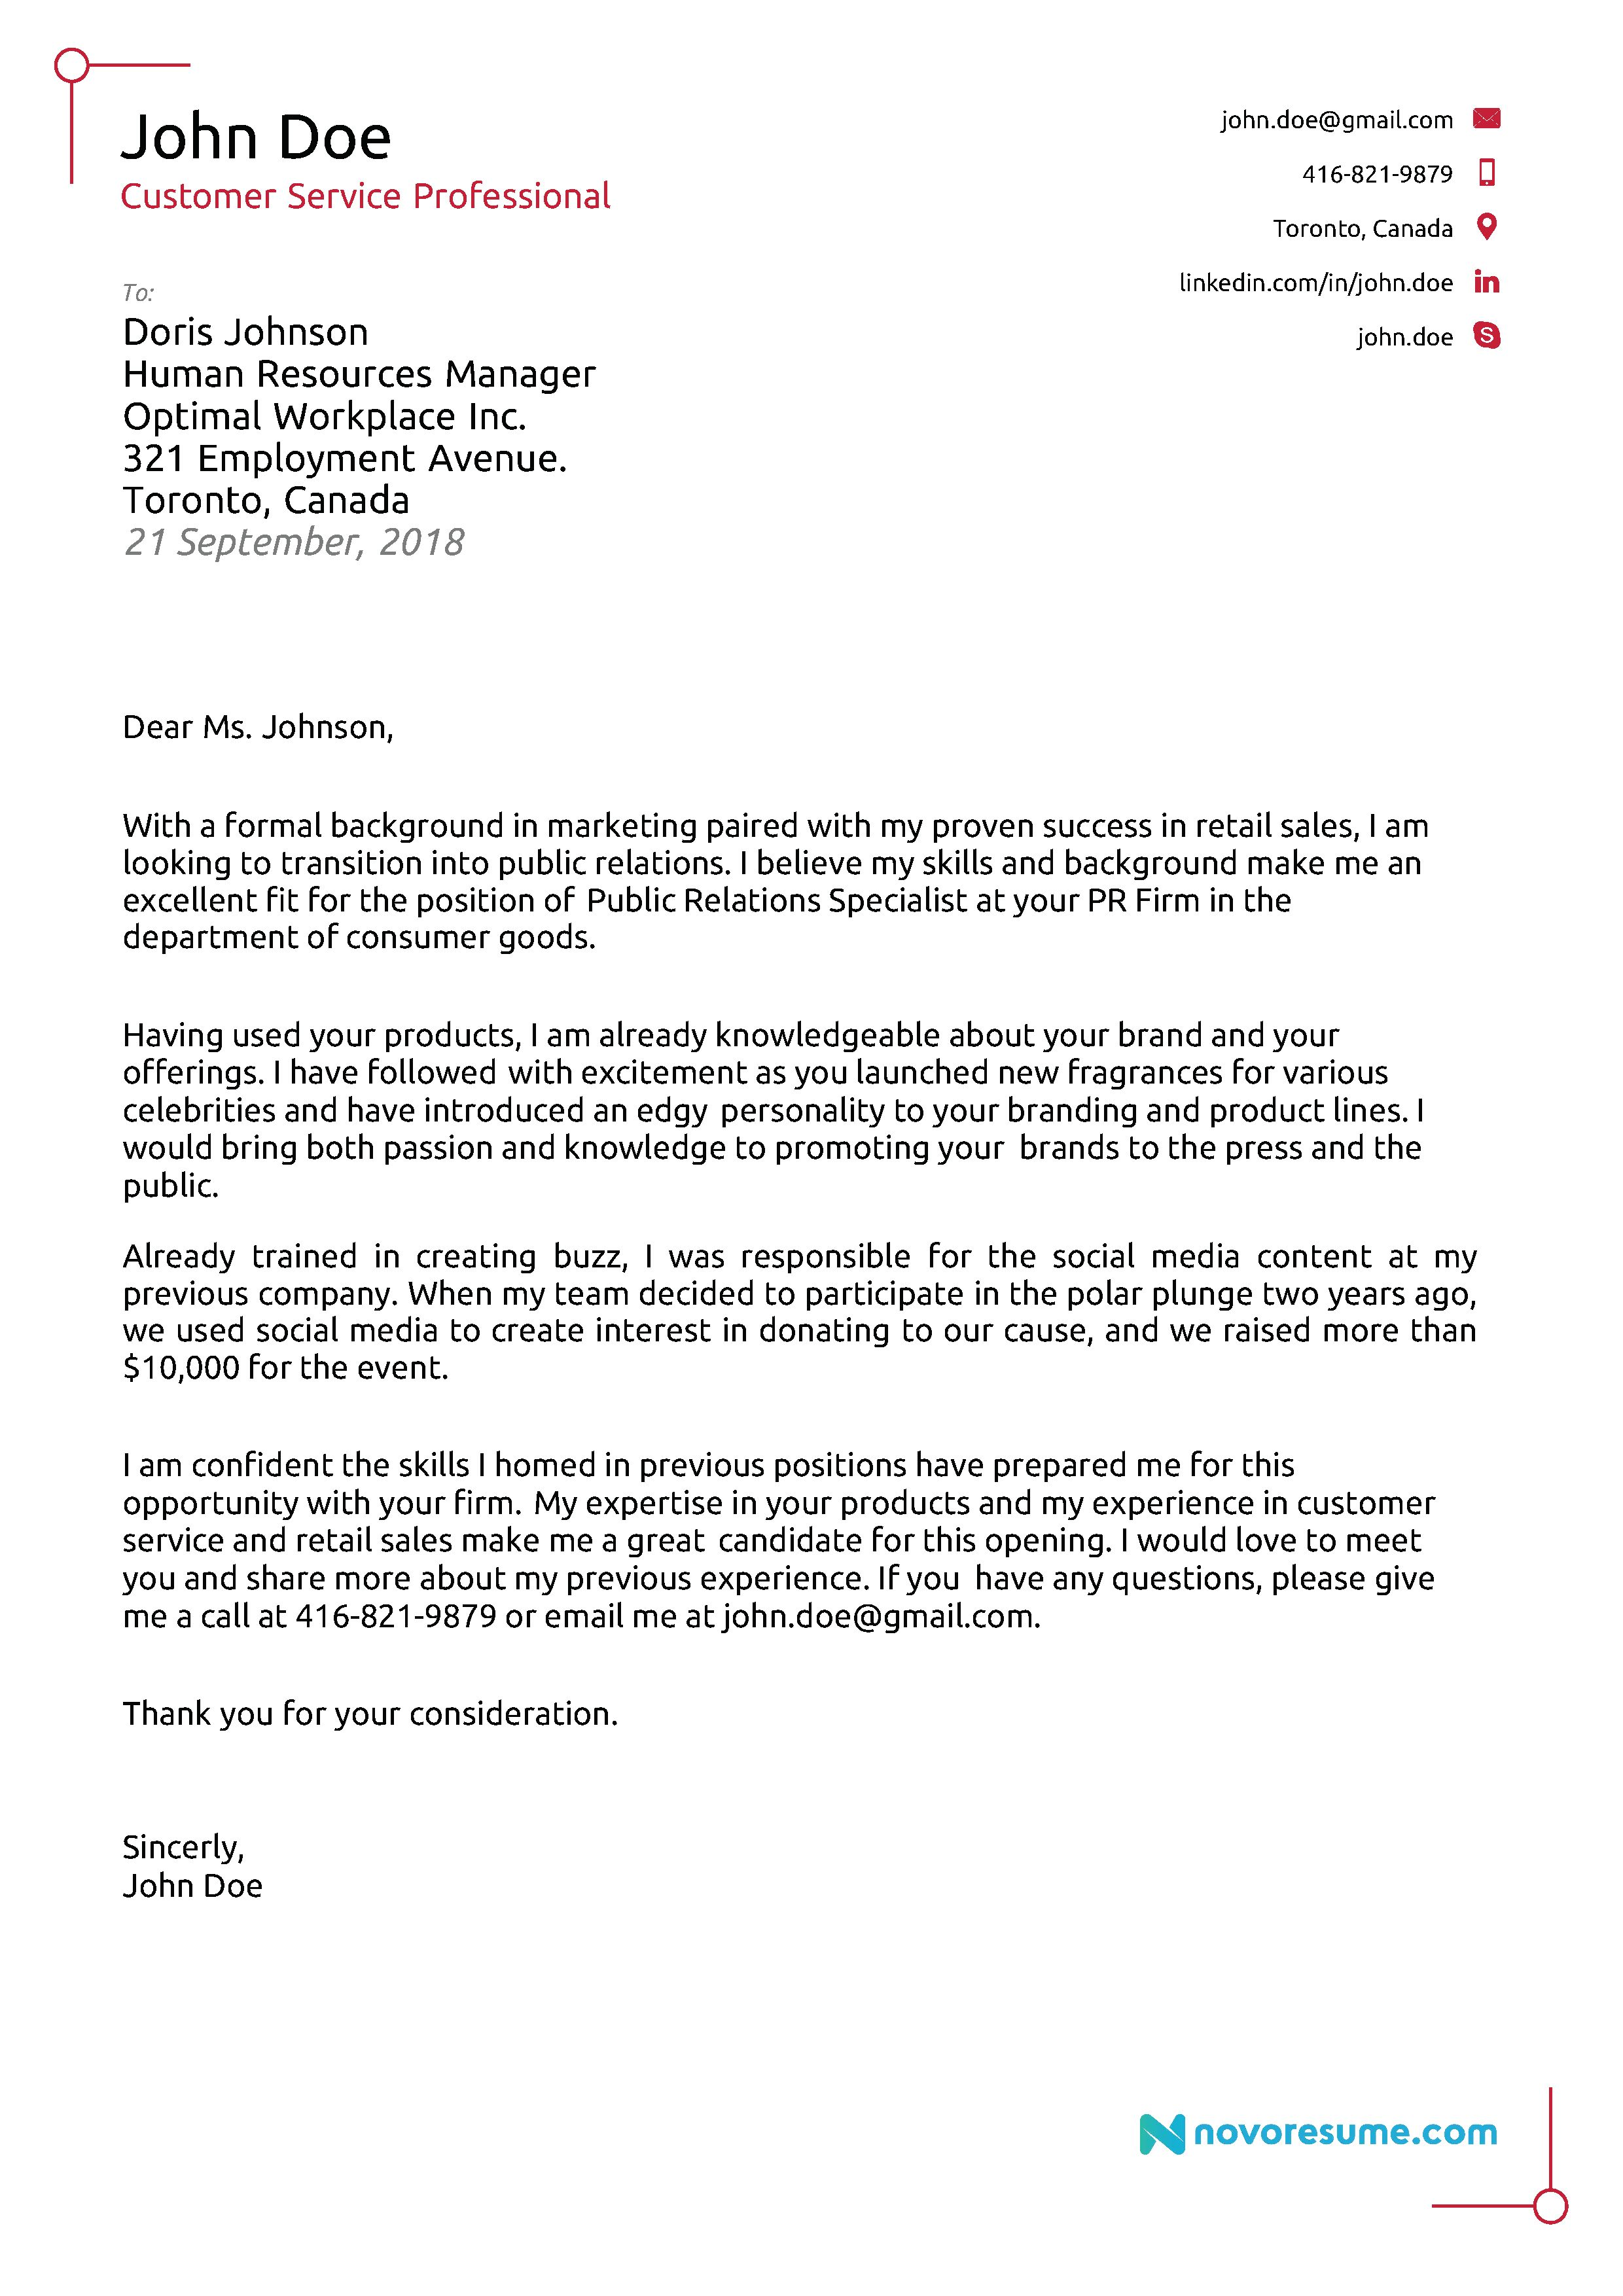 30 Cover Letter Example Cover Letter Designs Cover Letter